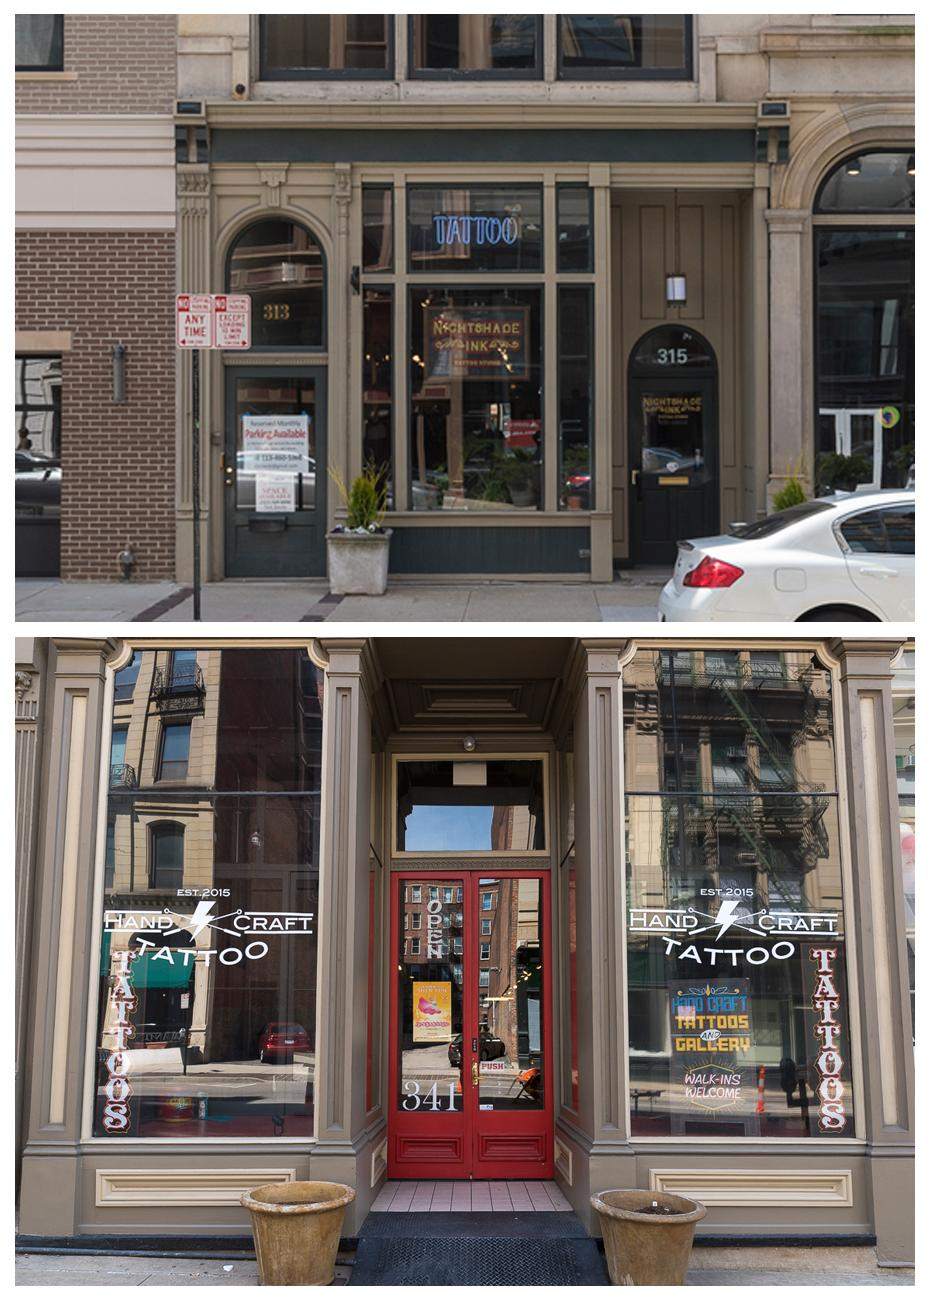 4th Street has tattoo parlors: Nightshade Ink & HandCraft Tattoo / ADDRESSES: 315 W 4th Street & 341 W 4th Street / Images: Phil Armstrong, Cincinnati Refined // Published: 4.23.18